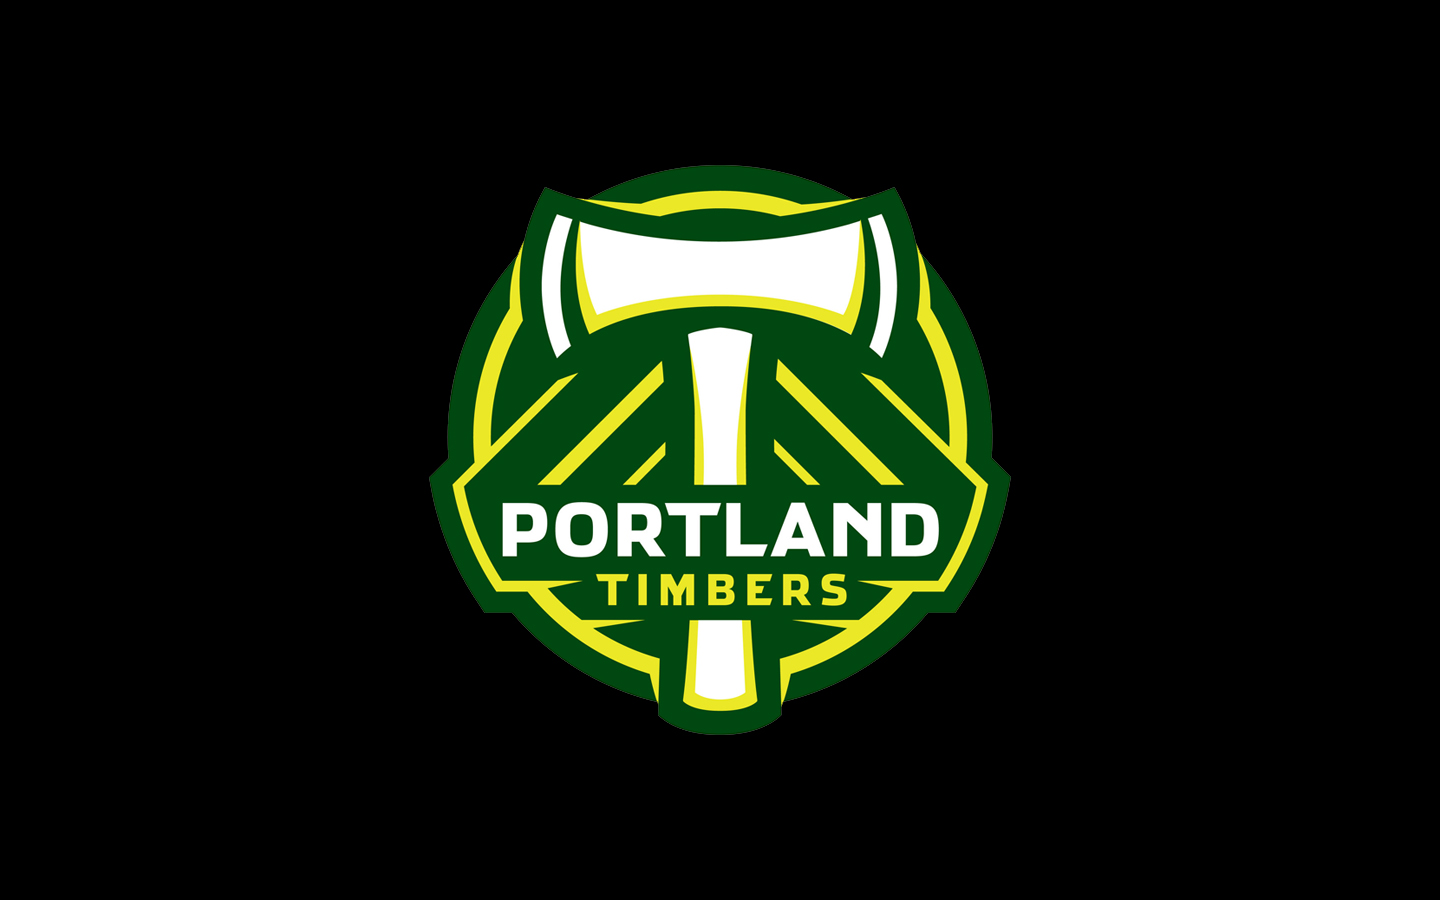 1440x900 - Portland Timbers Wallpapers 17